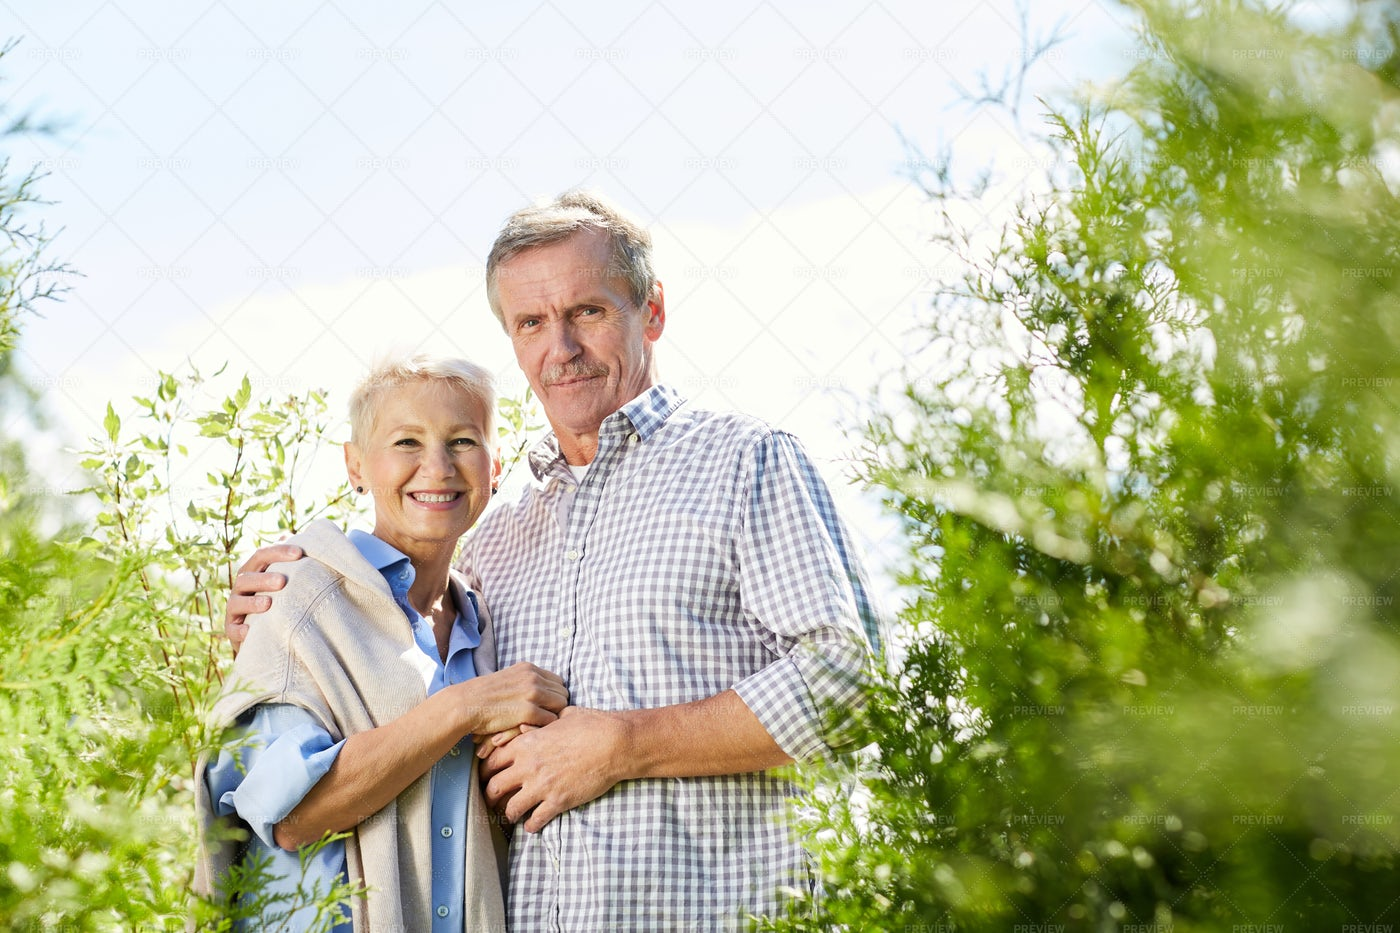 Senior Couple Posing In Park: Stock Photos